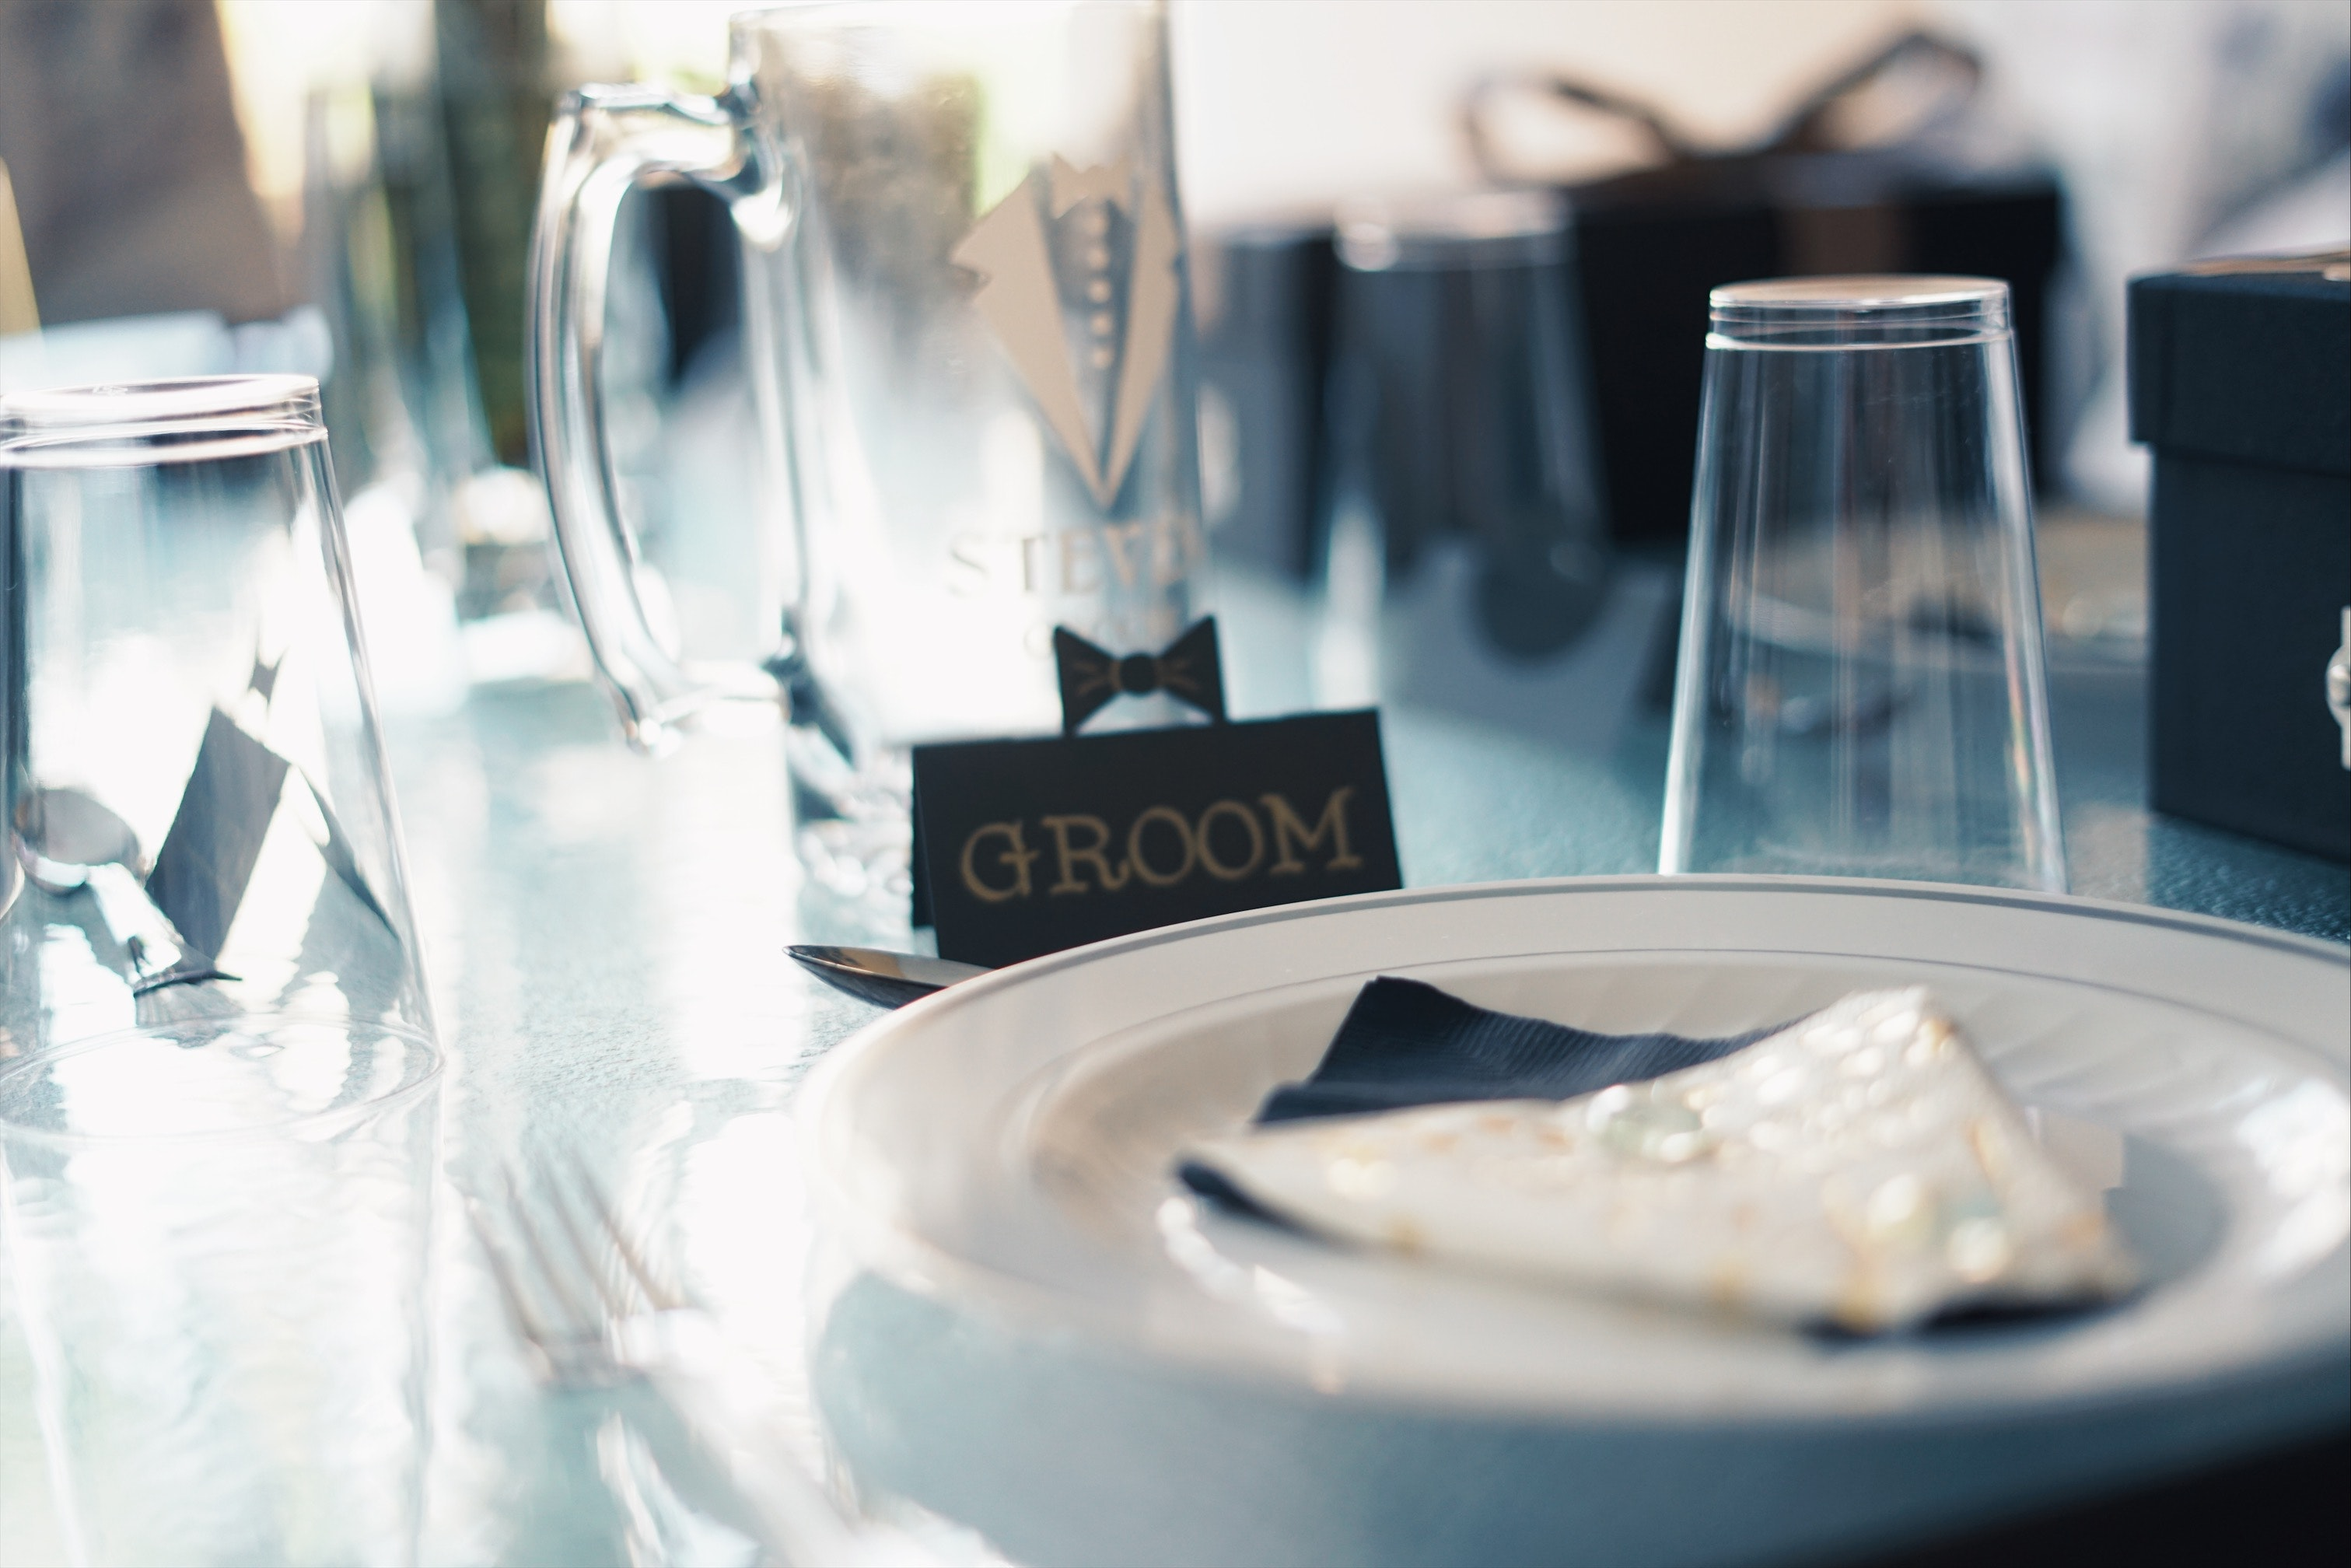 Round White Ceramic Plate Near Glass Cups and Groom Sign, Luxury, Wedding, Text, Tableware, HQ Photo